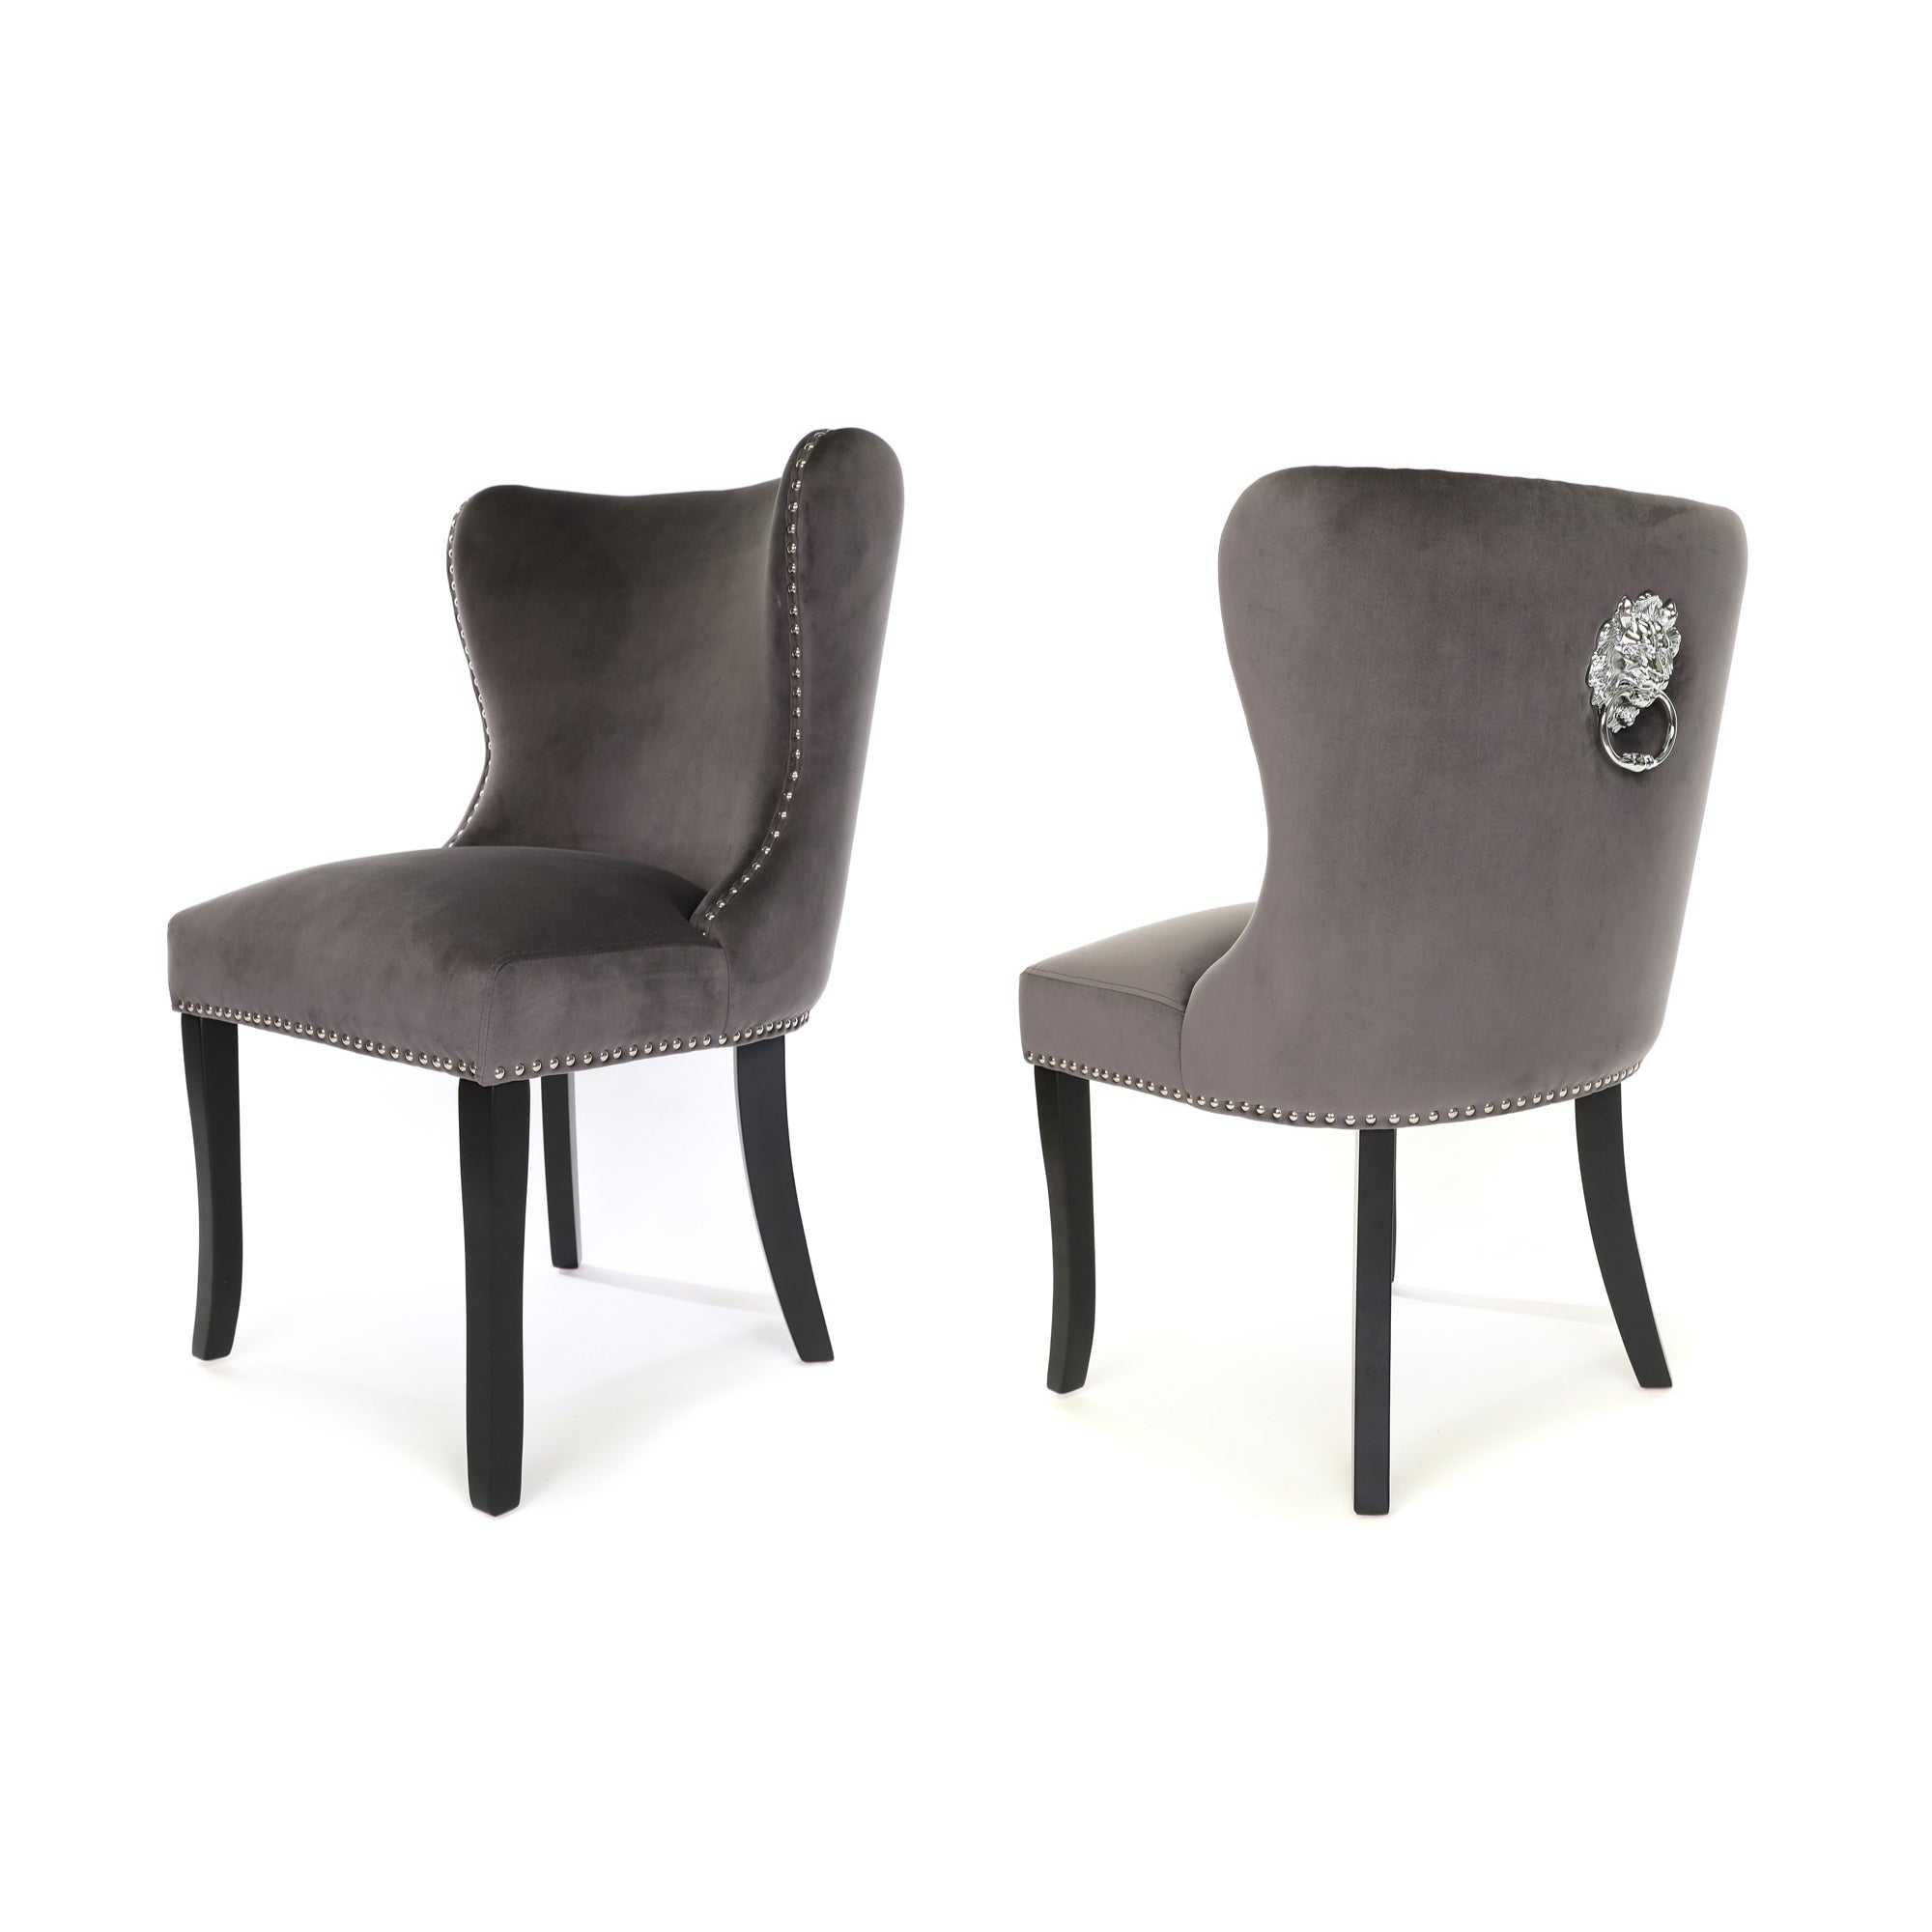 Amalfi Dining Chair, Charcoal  Grey Velvet, Black wood legs and a metal lion knocker